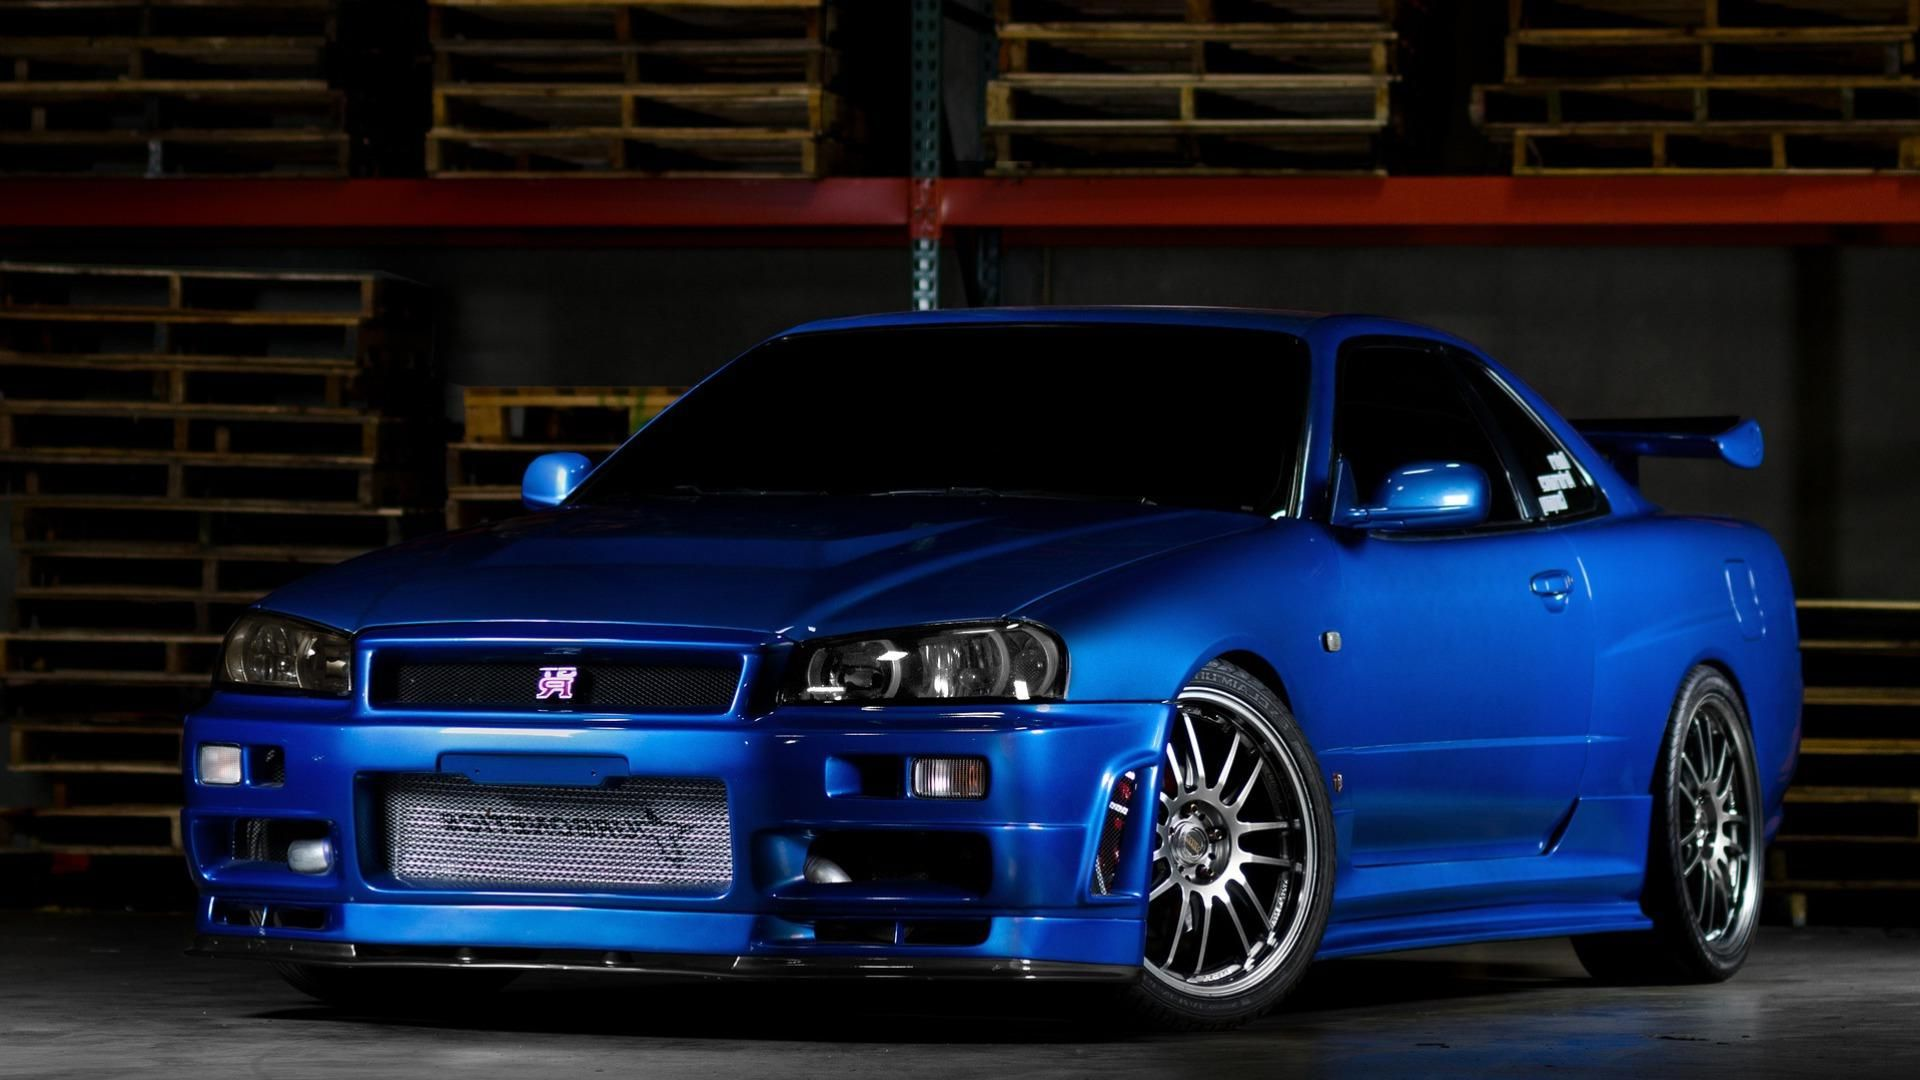 R34 Skyline Wallpaper